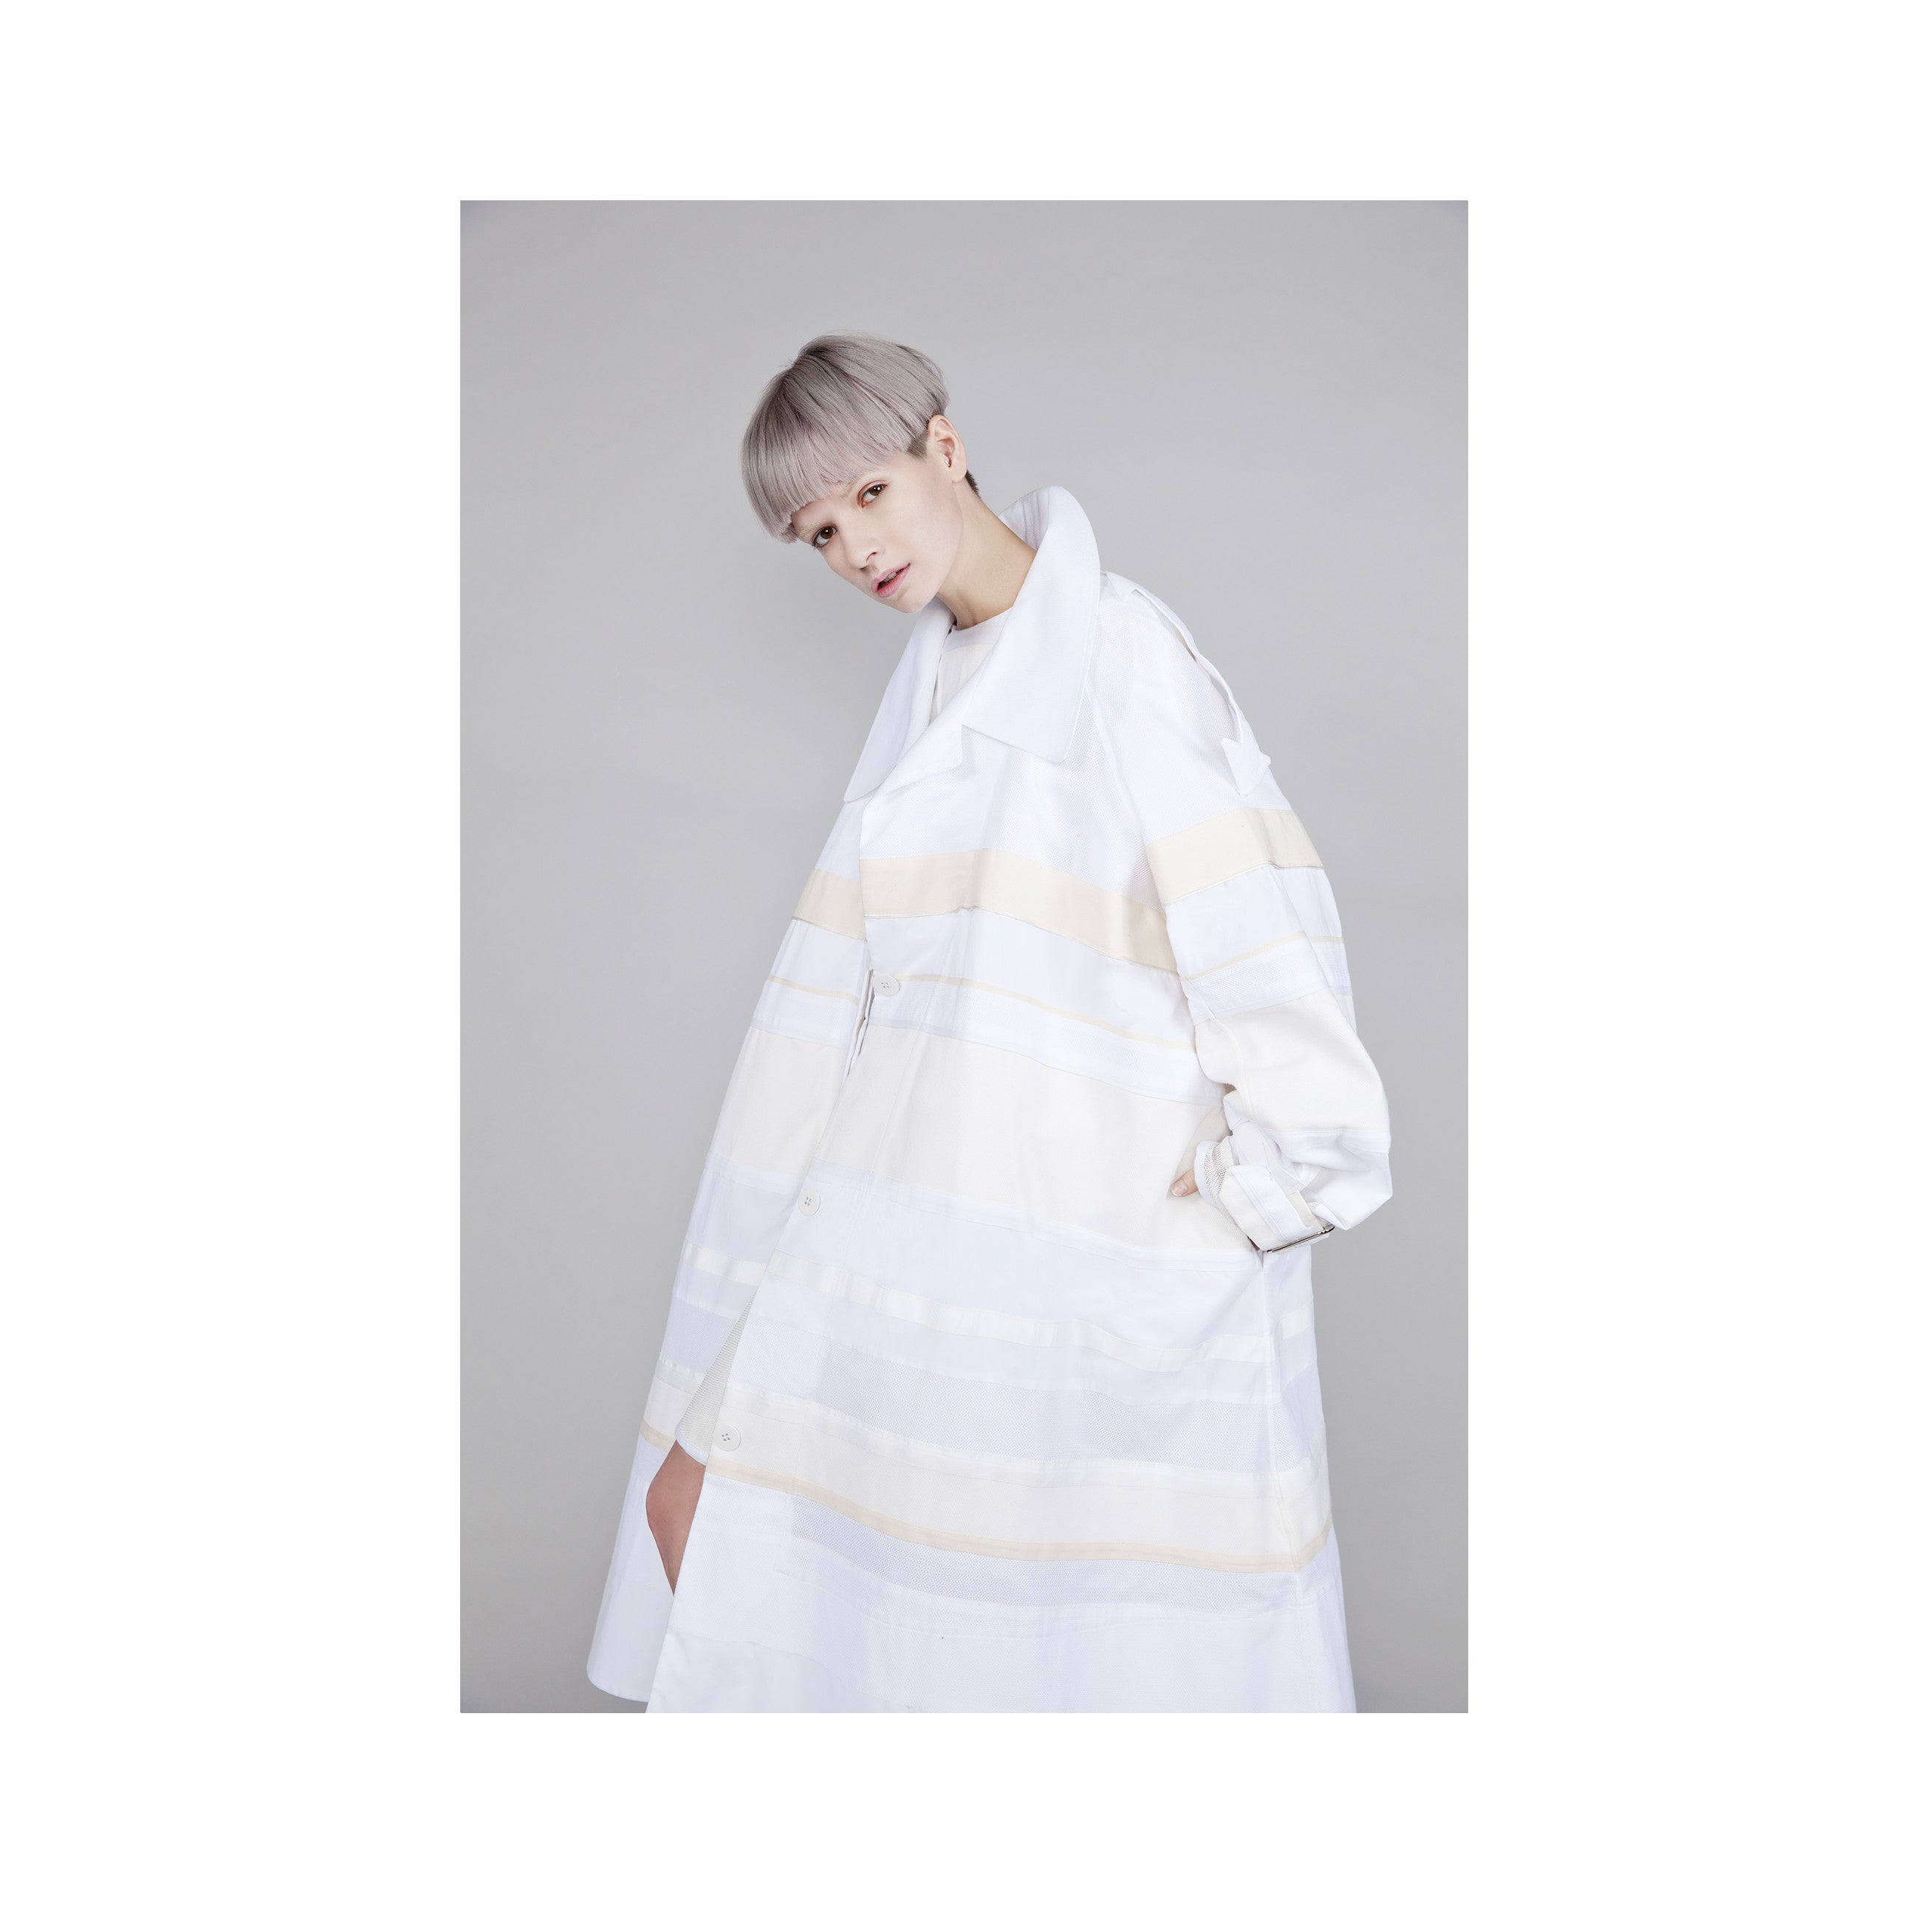 "White and Cream Mixed Textile ""Morrison"" Trench Coat"